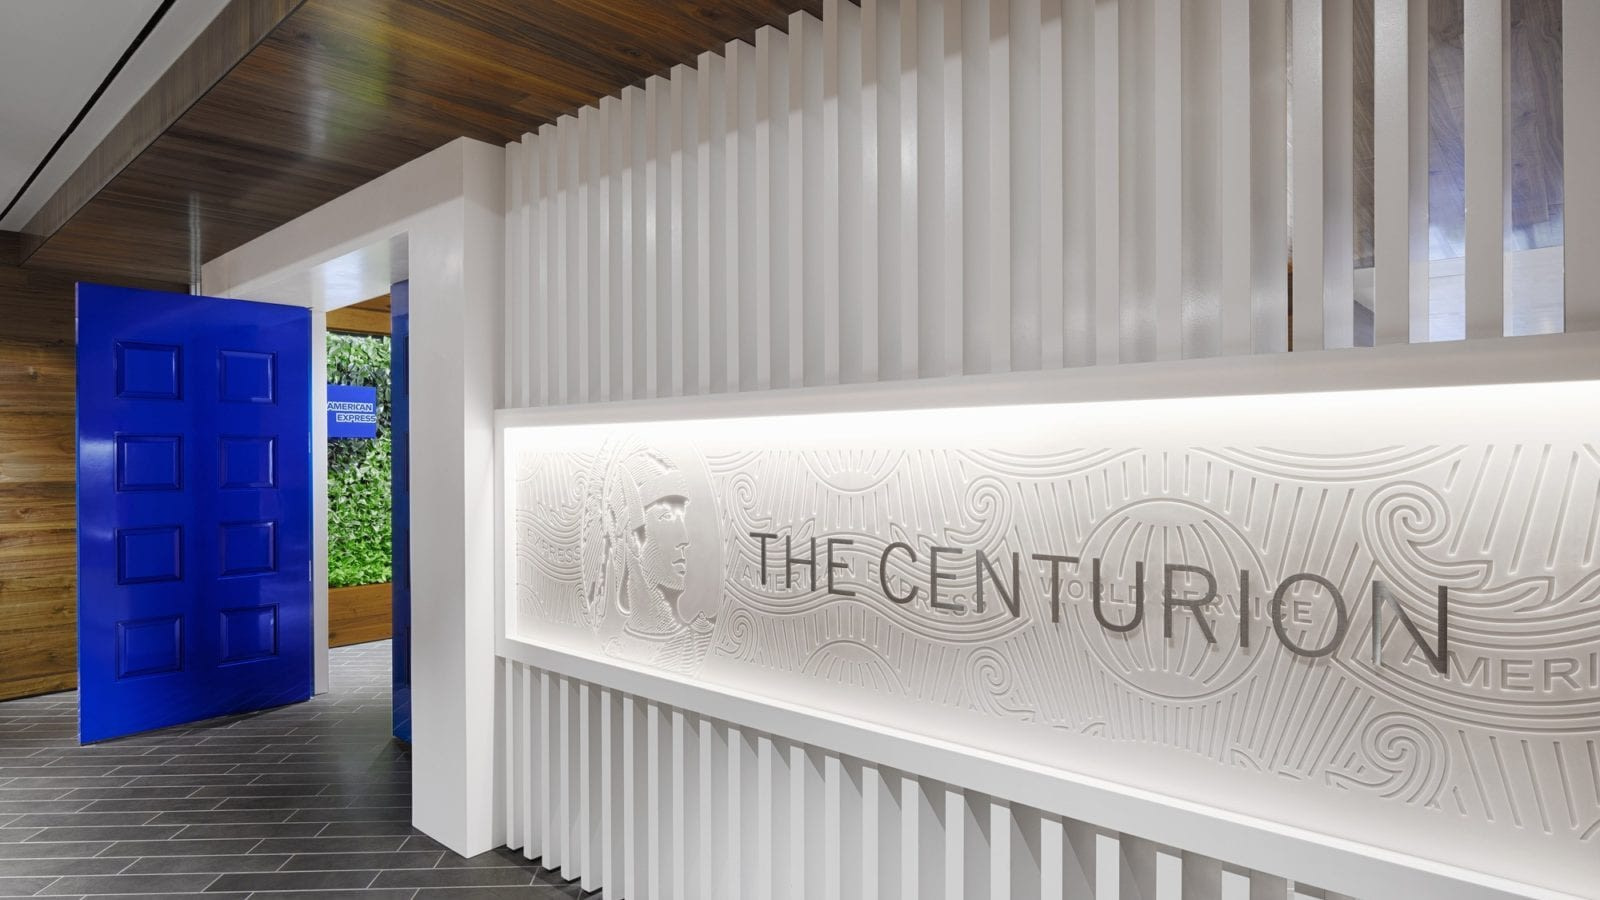 This blue door is indicative of all Centurion Lounge location.